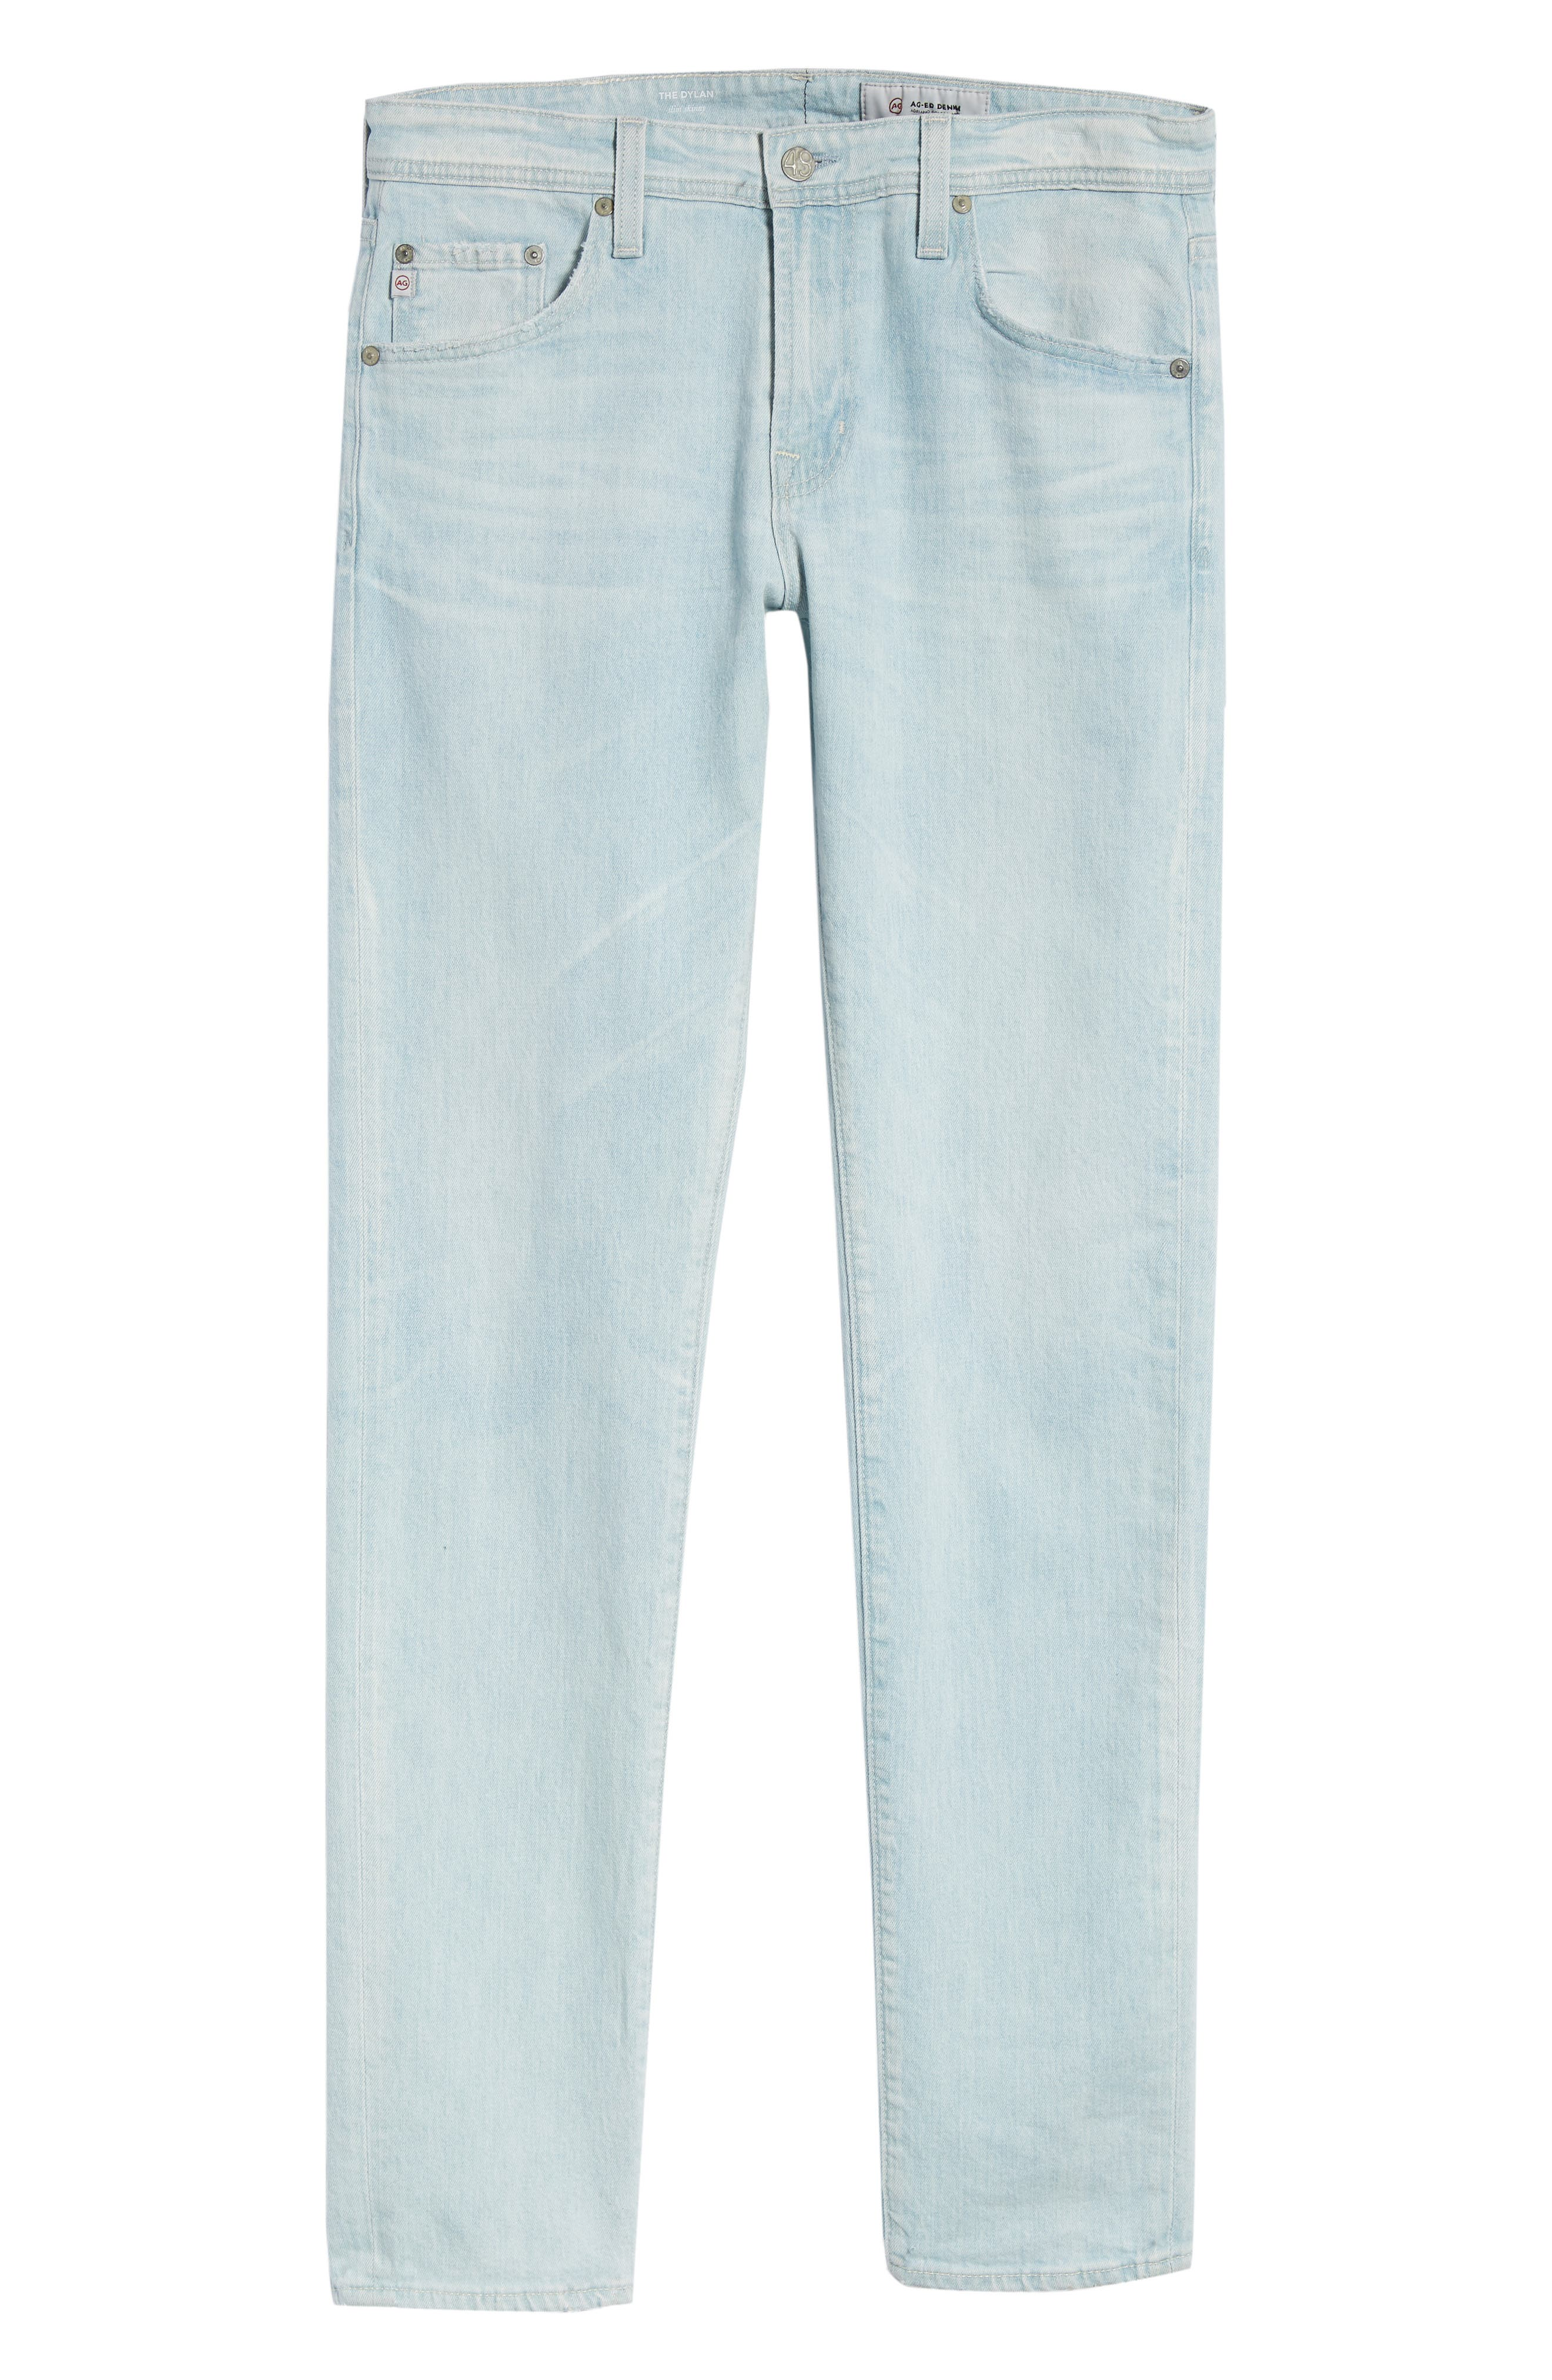 Dylan Skinny Fit Jeans,                             Alternate thumbnail 6, color,                             28 YEARS SALT MIST